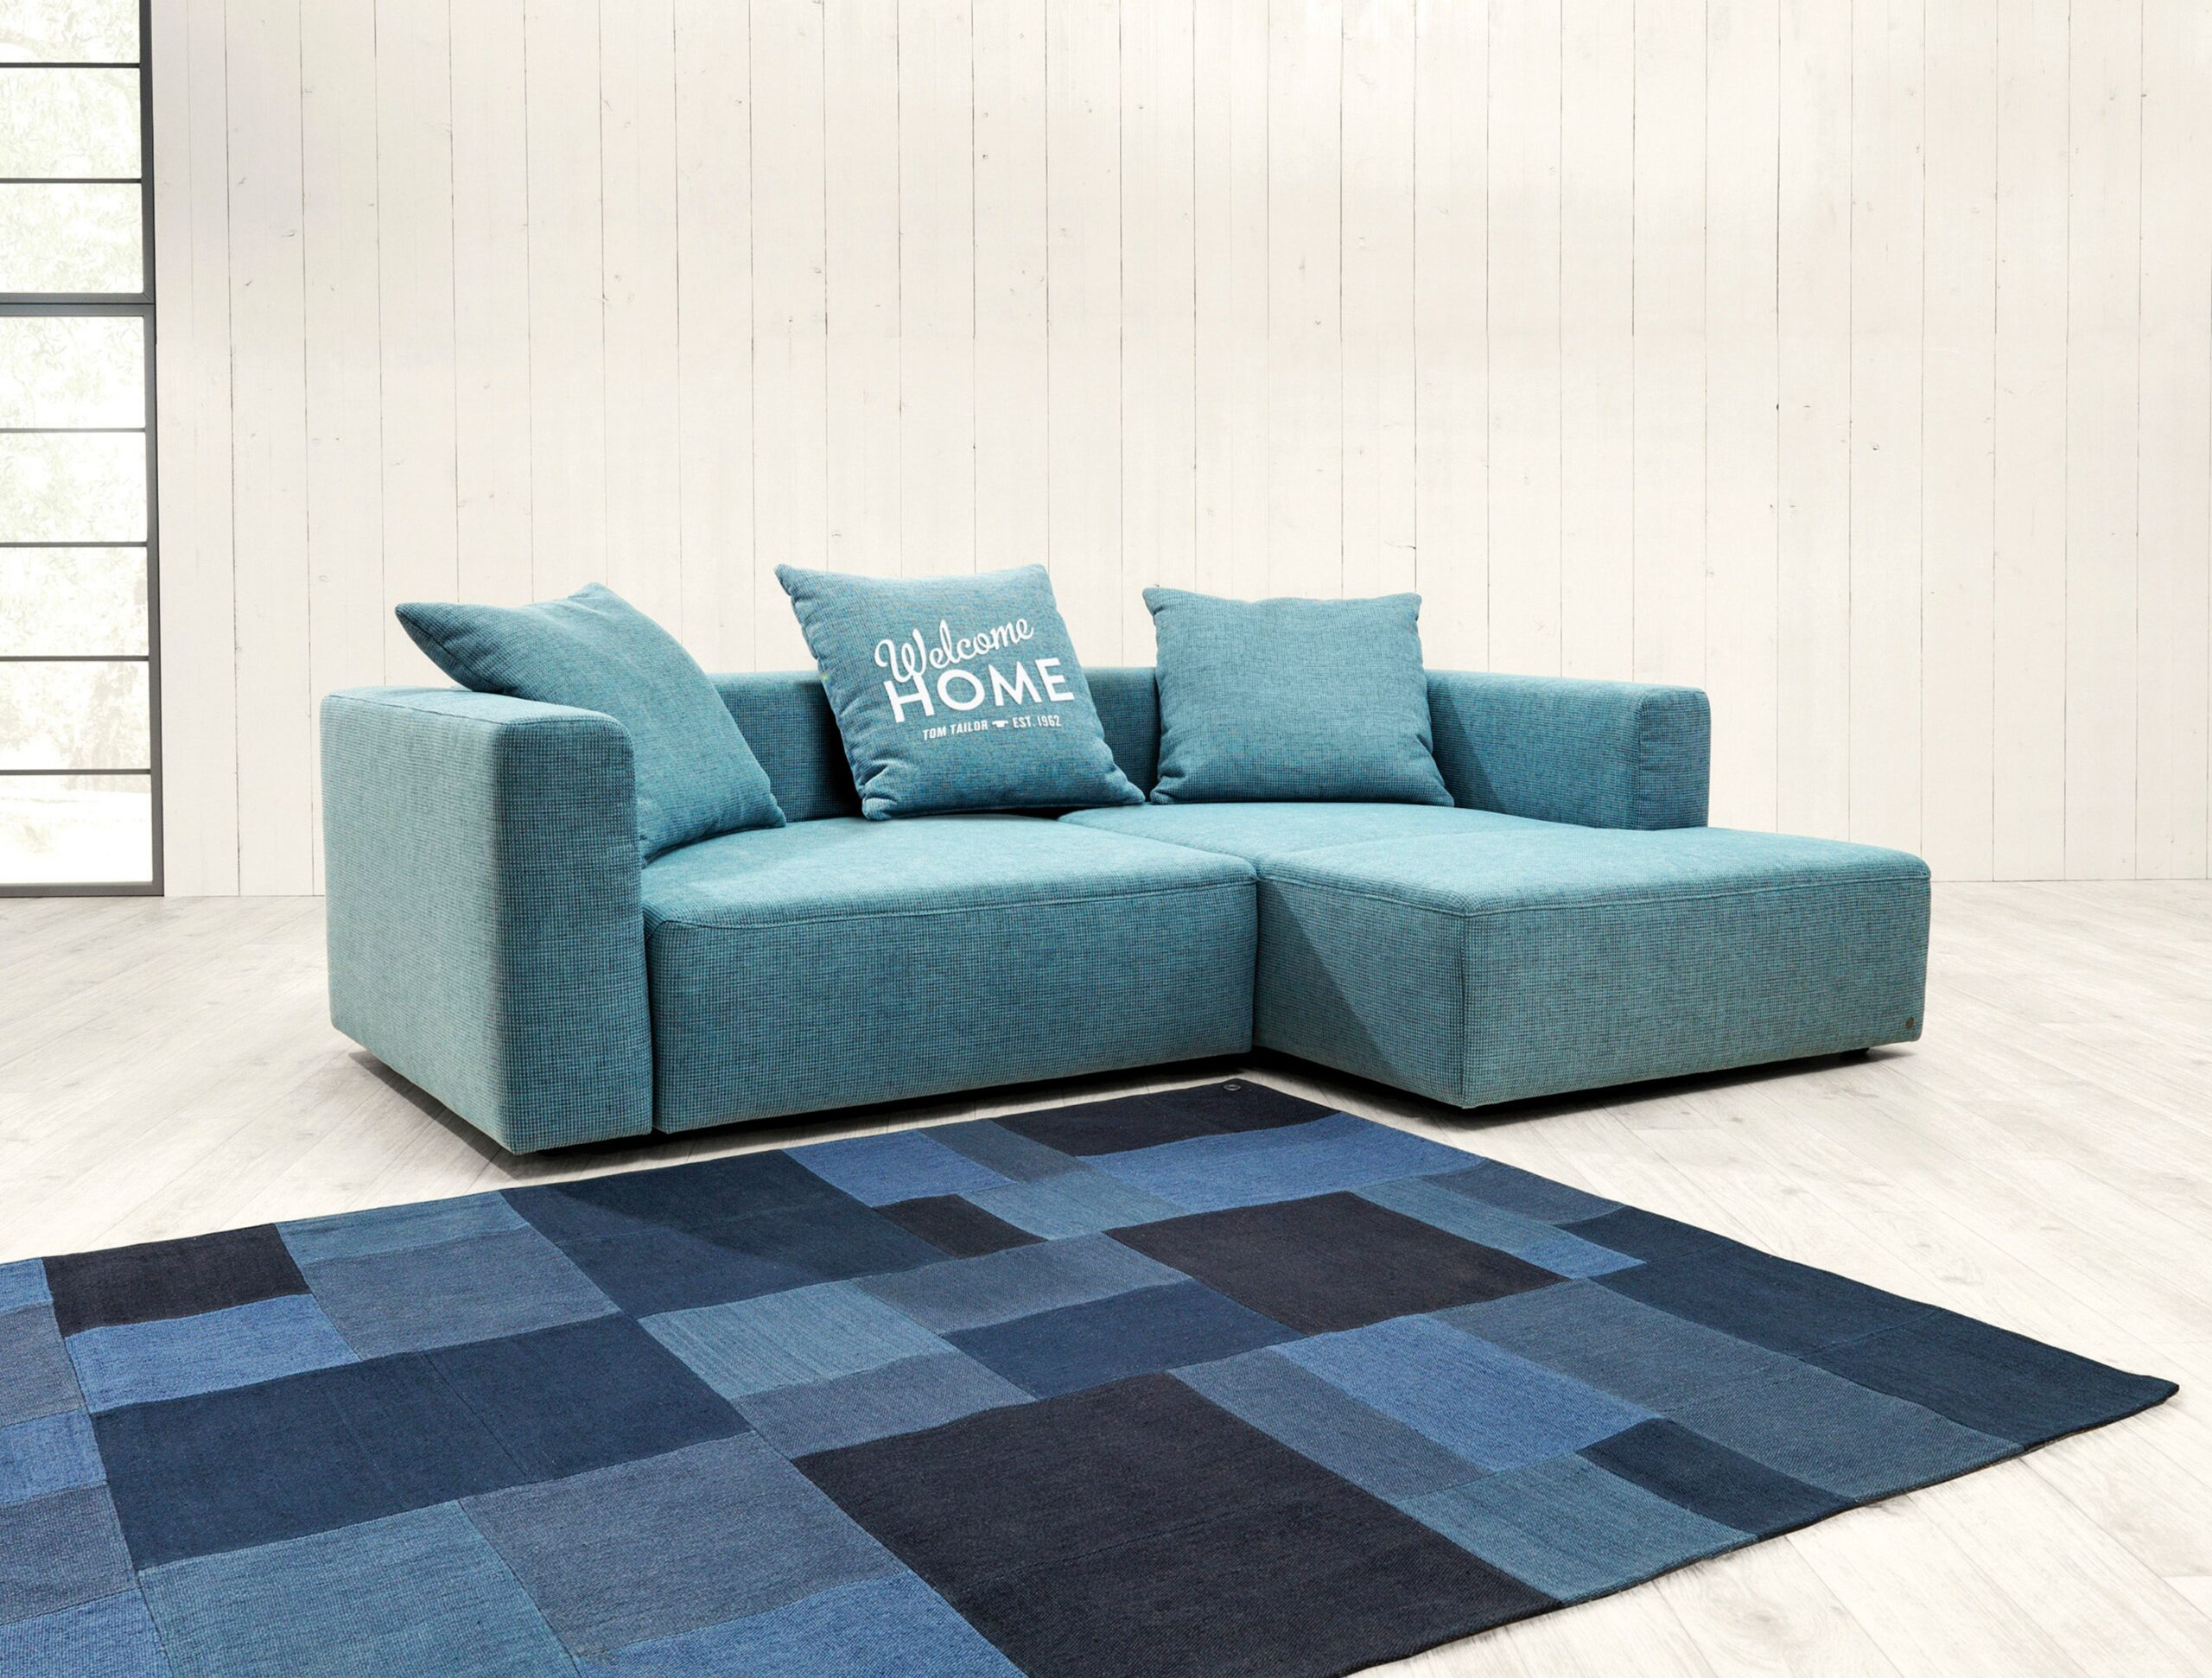 Full Size of Tom Tailor Sofa Heaven Style Colors Elements Nordic Pure Couch Chic West Coast Big Cube Polstergarnitur Casual S Tcu6 05 Fresh Blue Ca 162 38 X Ewald Schillig Sofa Tom Tailor Sofa